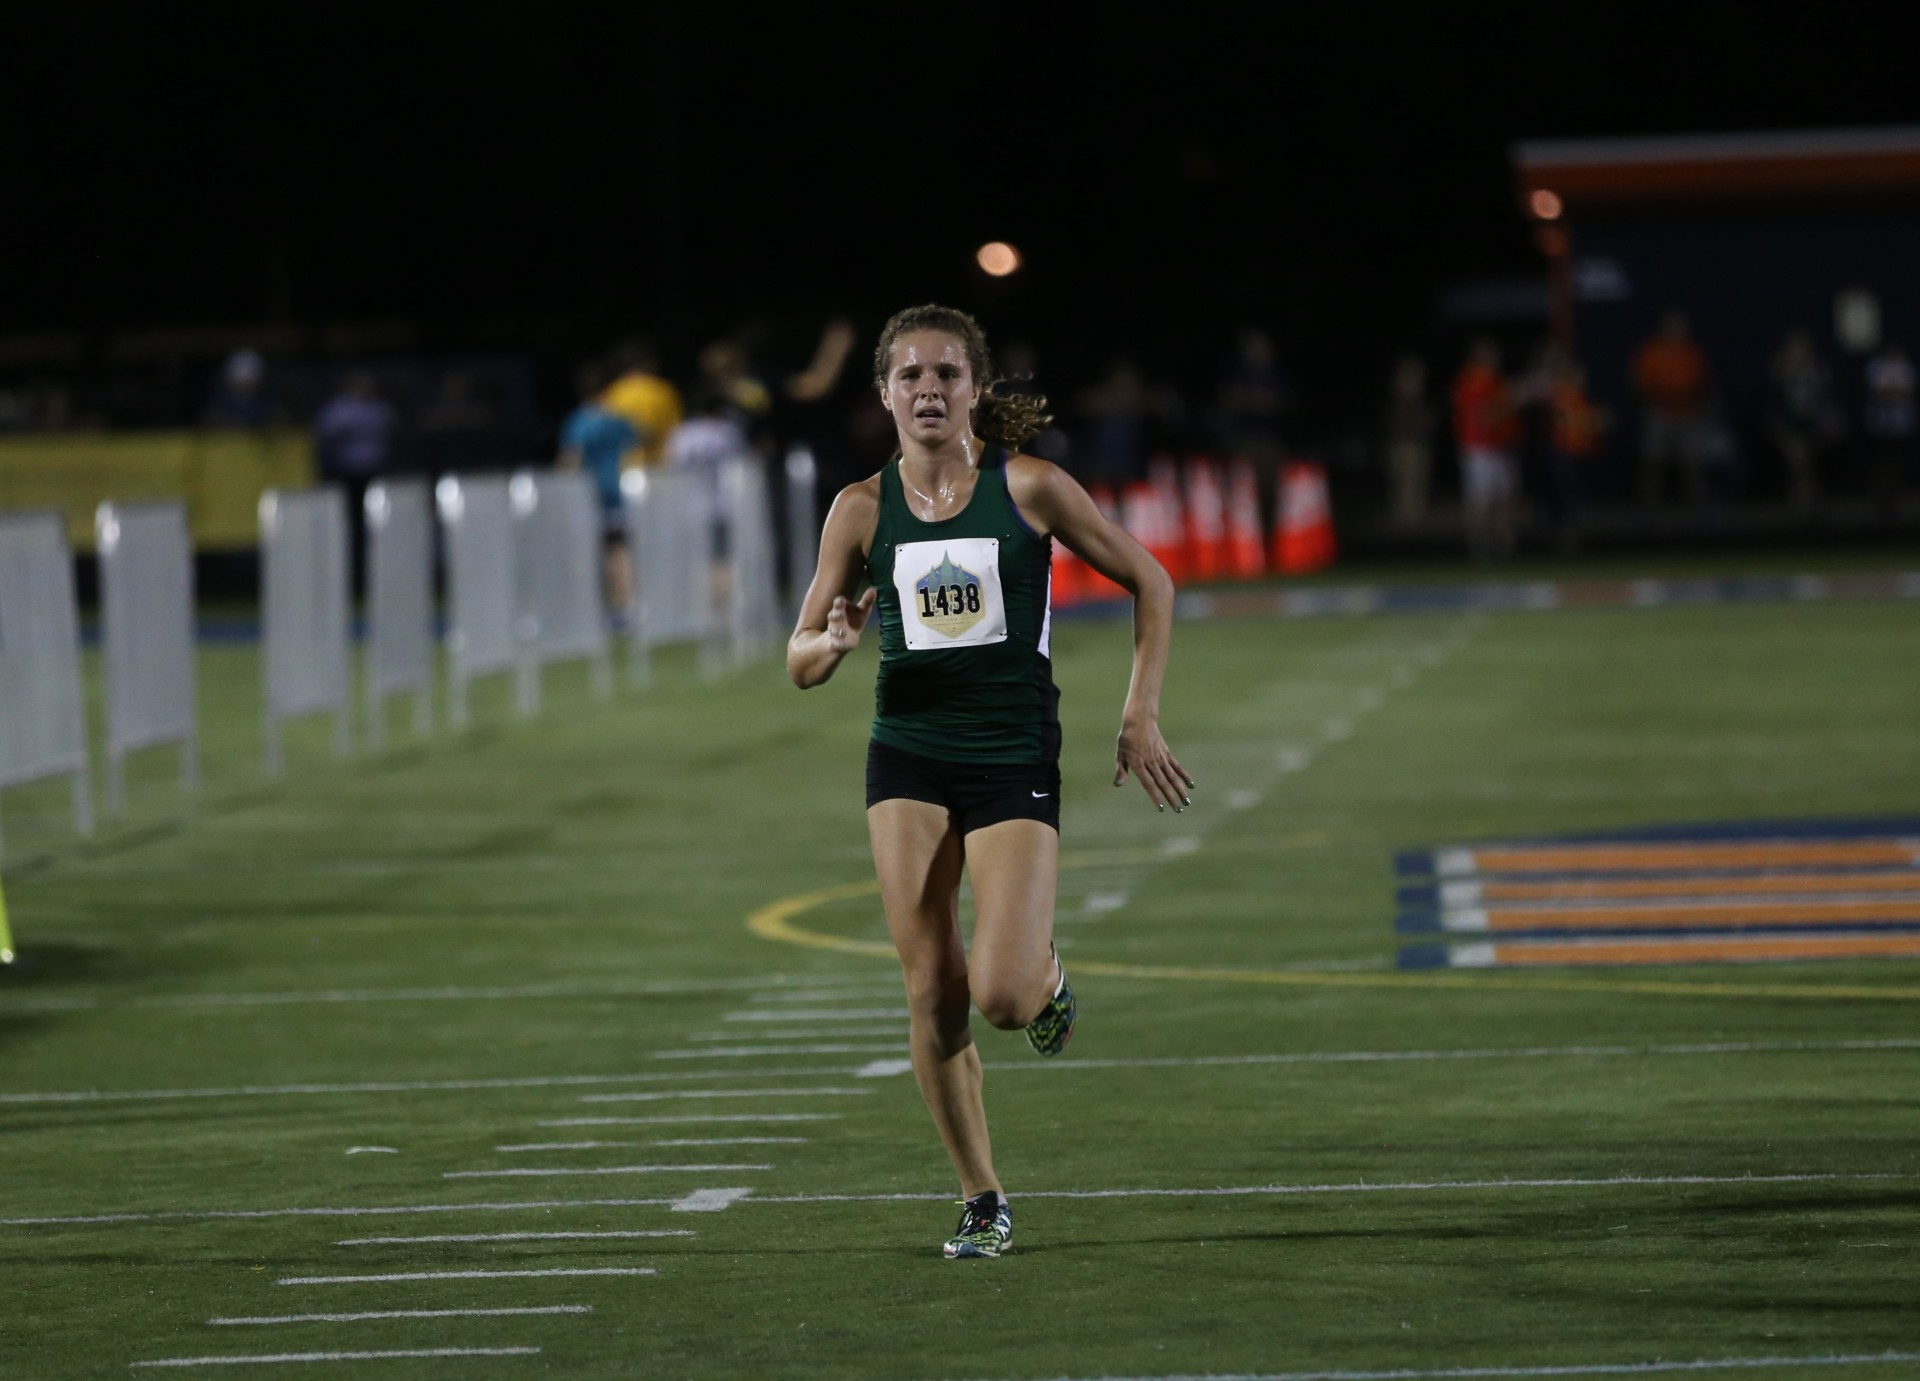 Glenbard West duo shines bright at Naperville Twilight Invitational